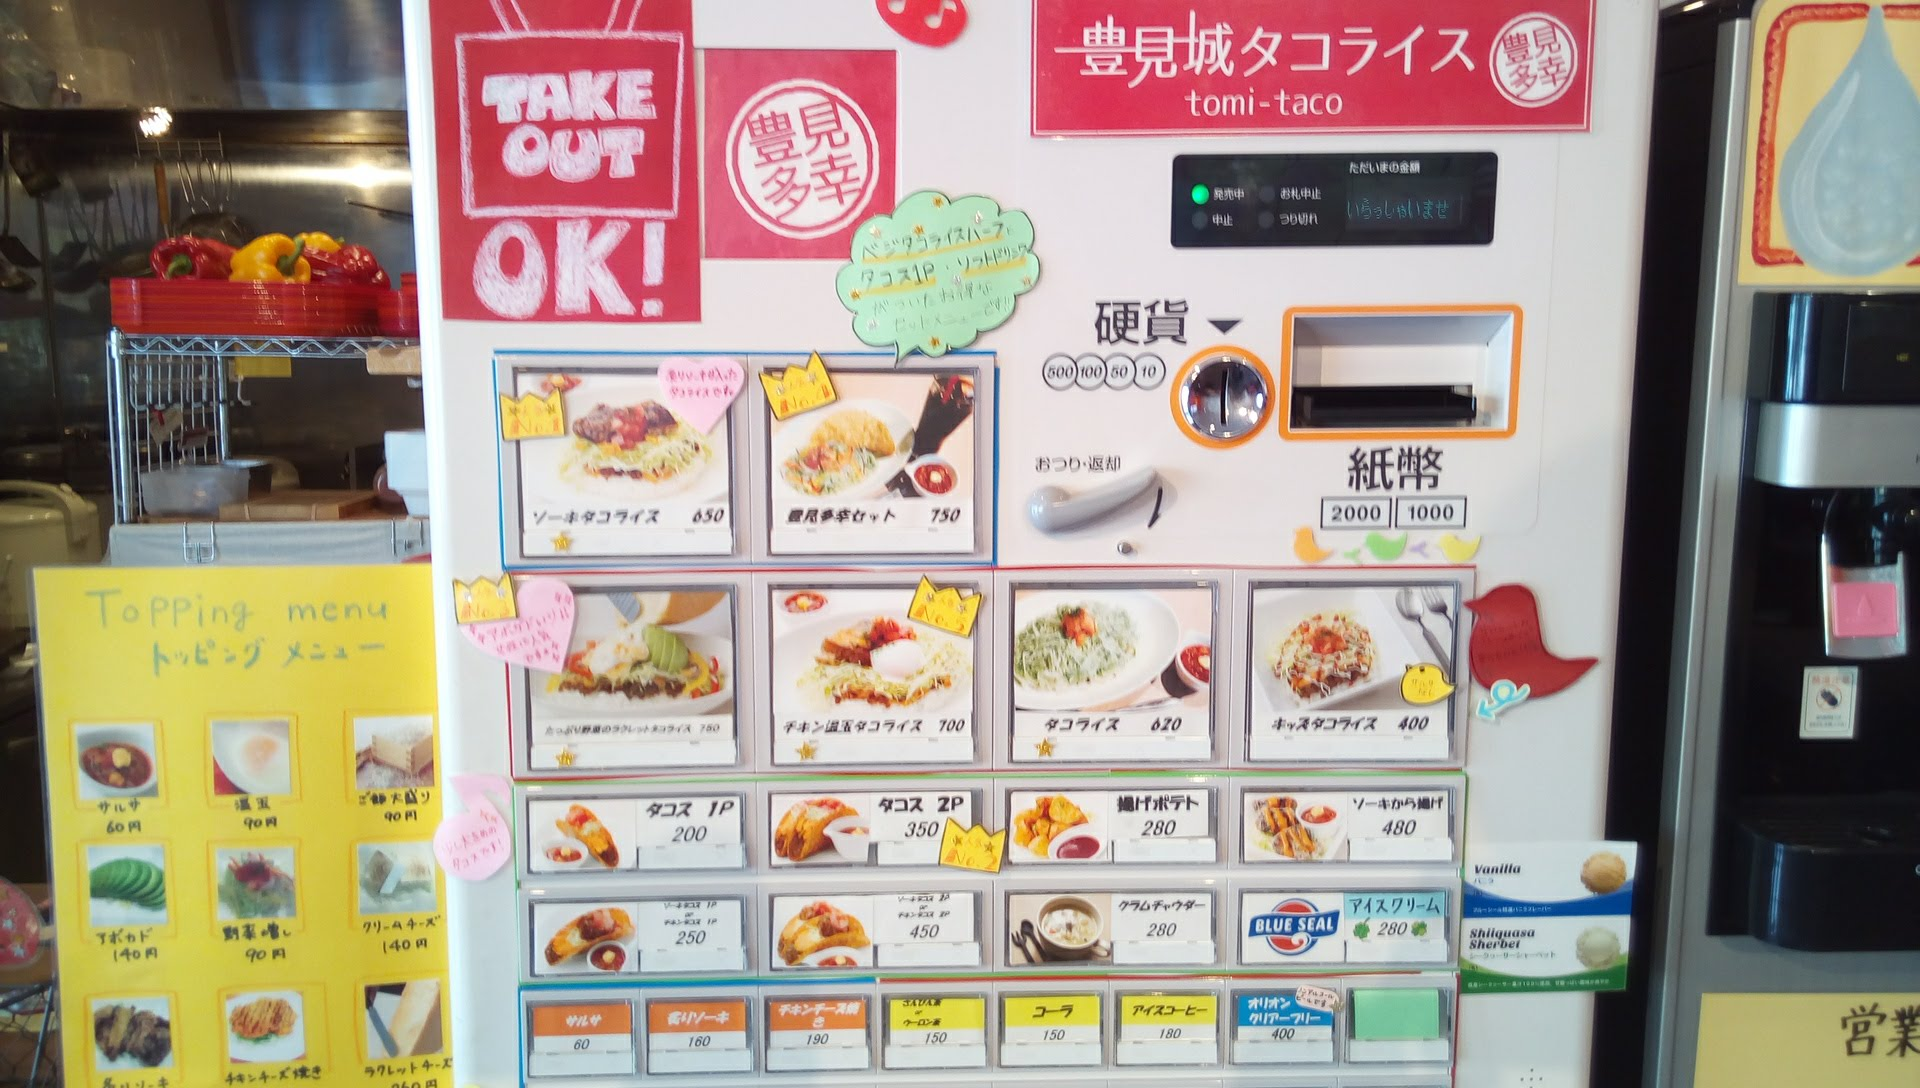 a ticket machine in Tomishiro Taco Rice